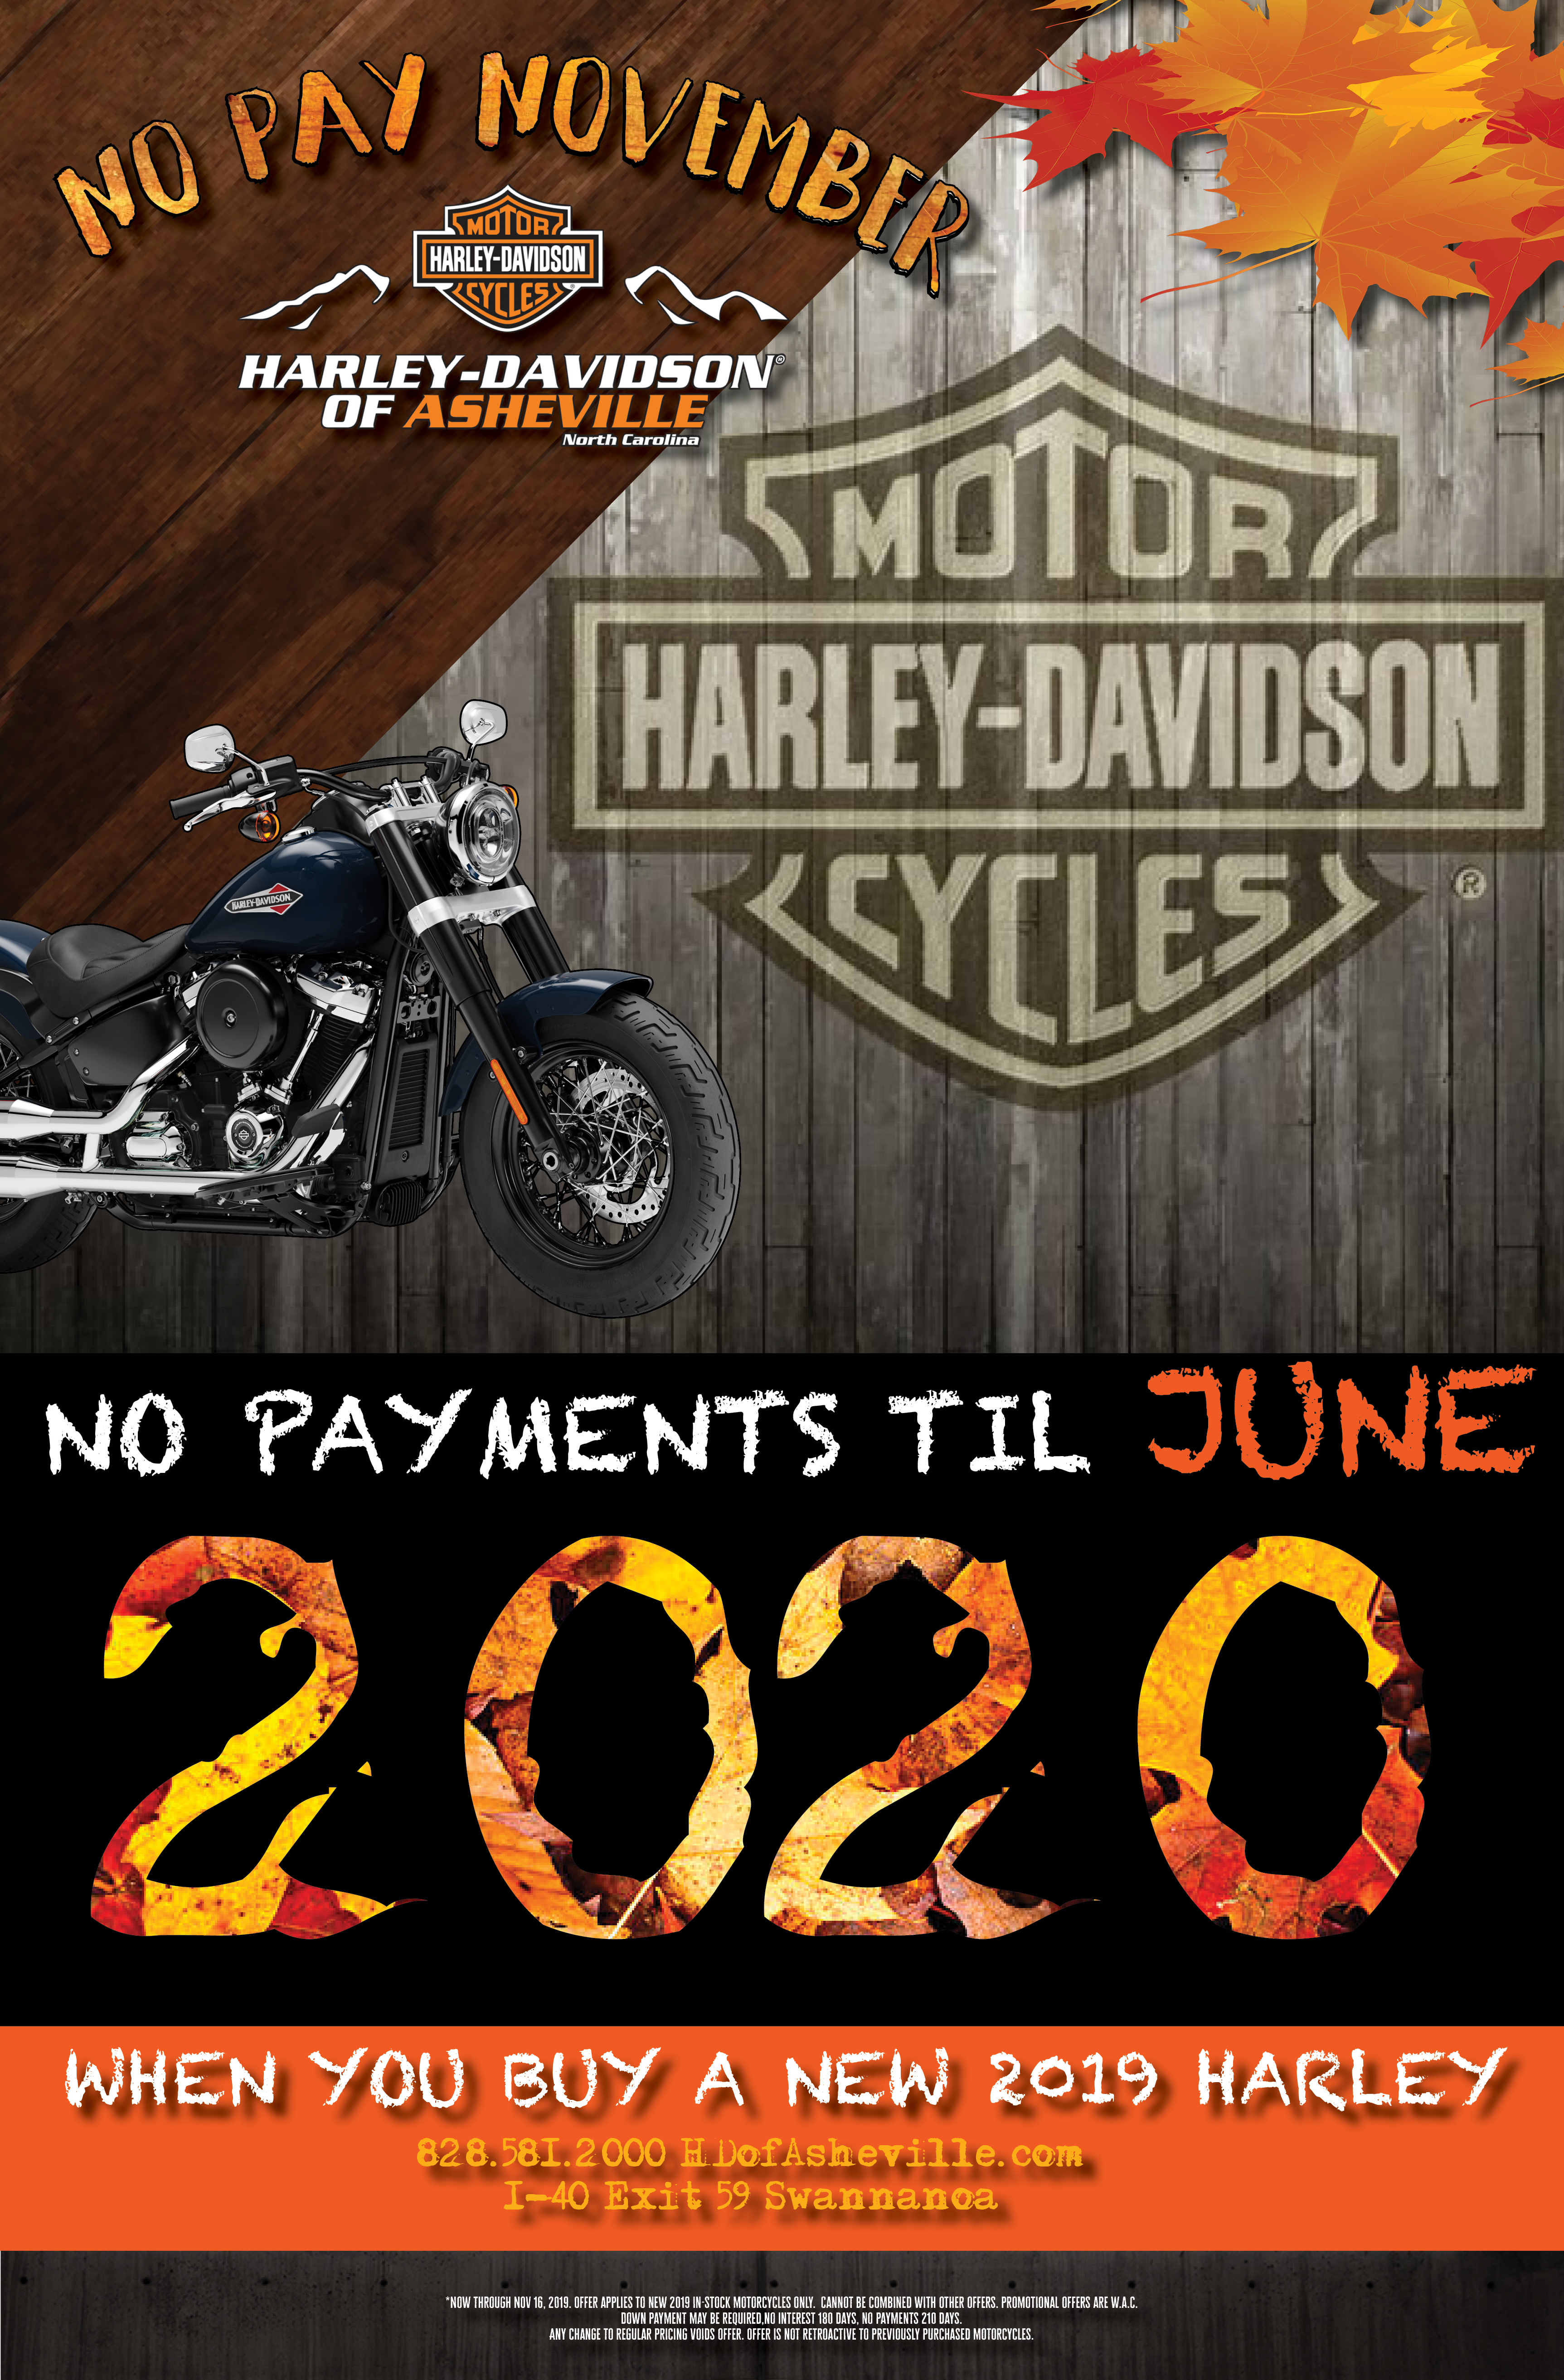 🍁No Pay November🍁 No Payments til June 2020 when you buy a new 2019 Harley